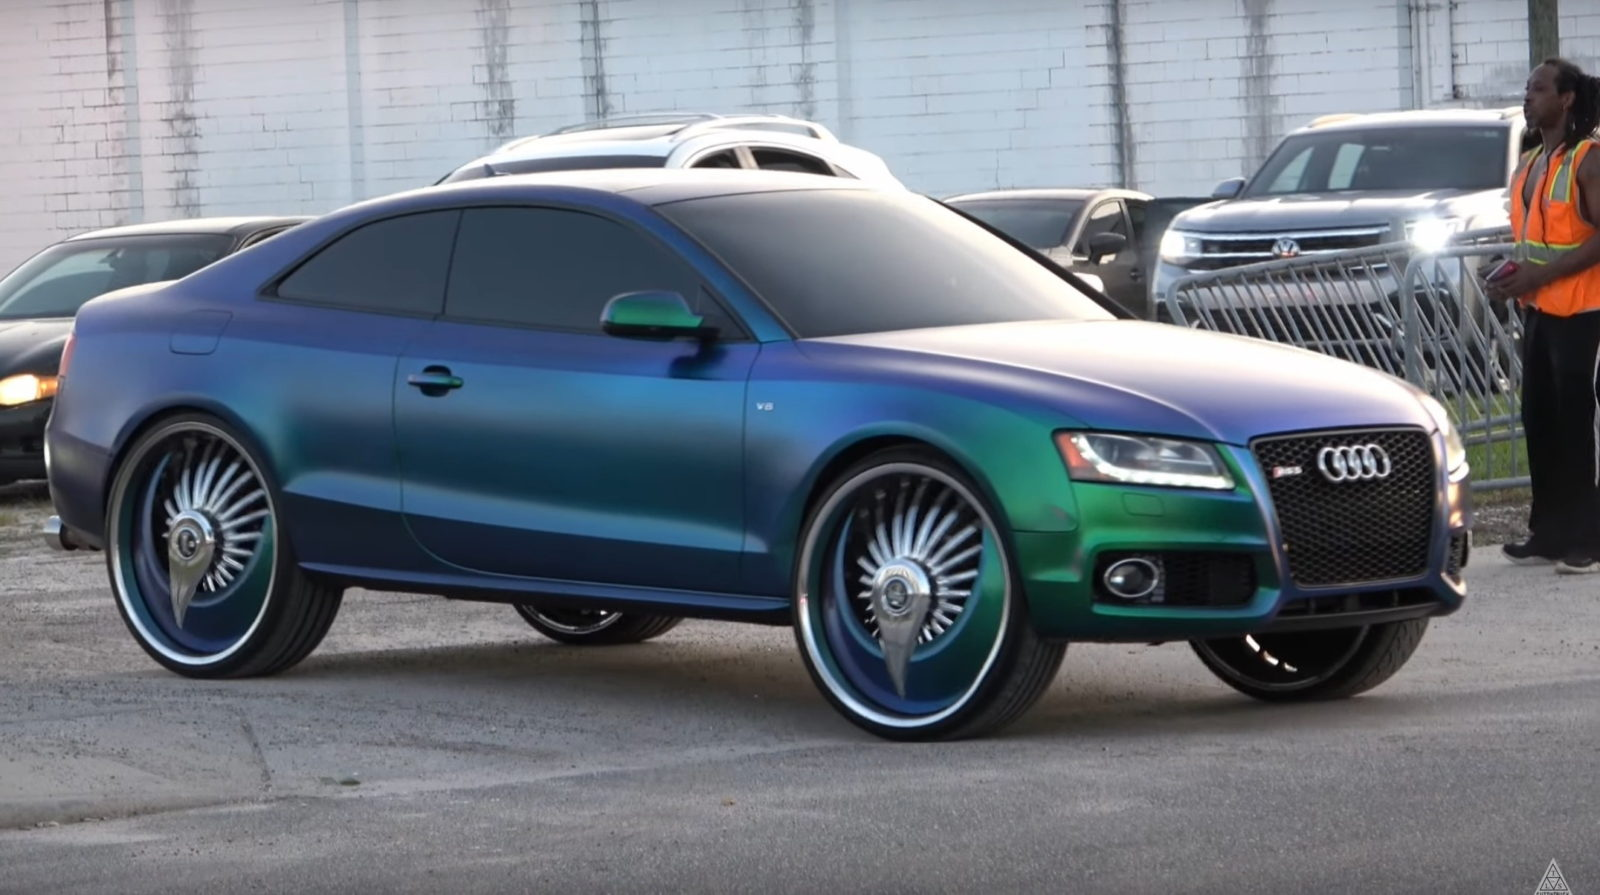 audi-s5-on-massive-wheels-spotted-at-florida-car-meet-trying-to-blend-in-with-donks